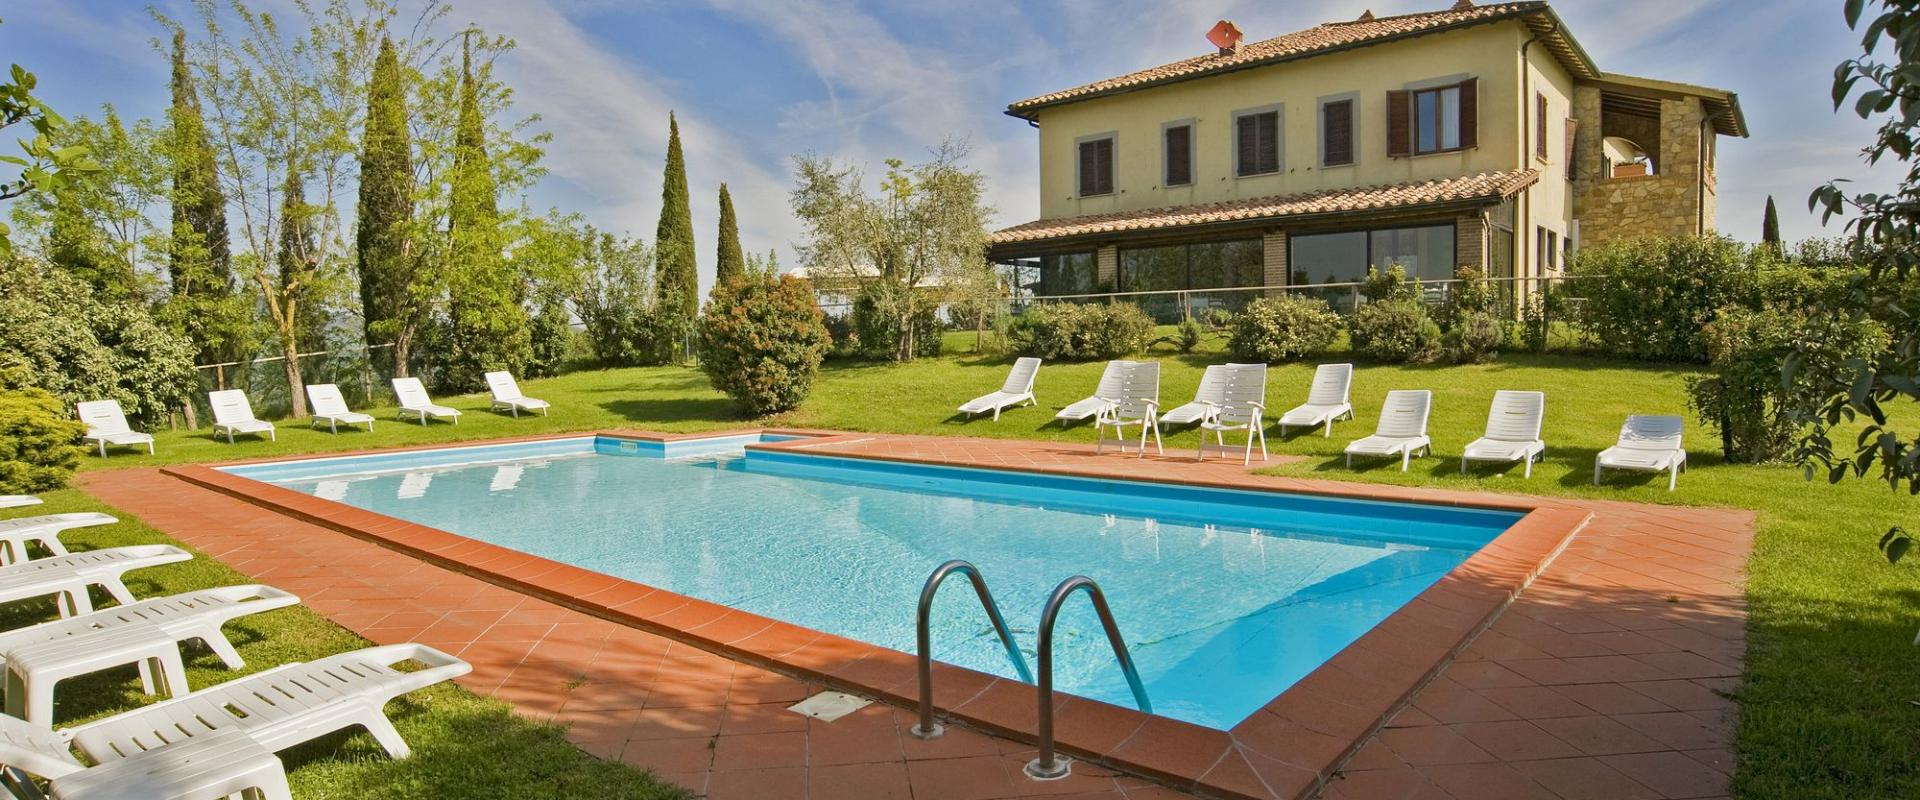 Swimming Pool The Il Poggio Farmhouse and Resort in Siena